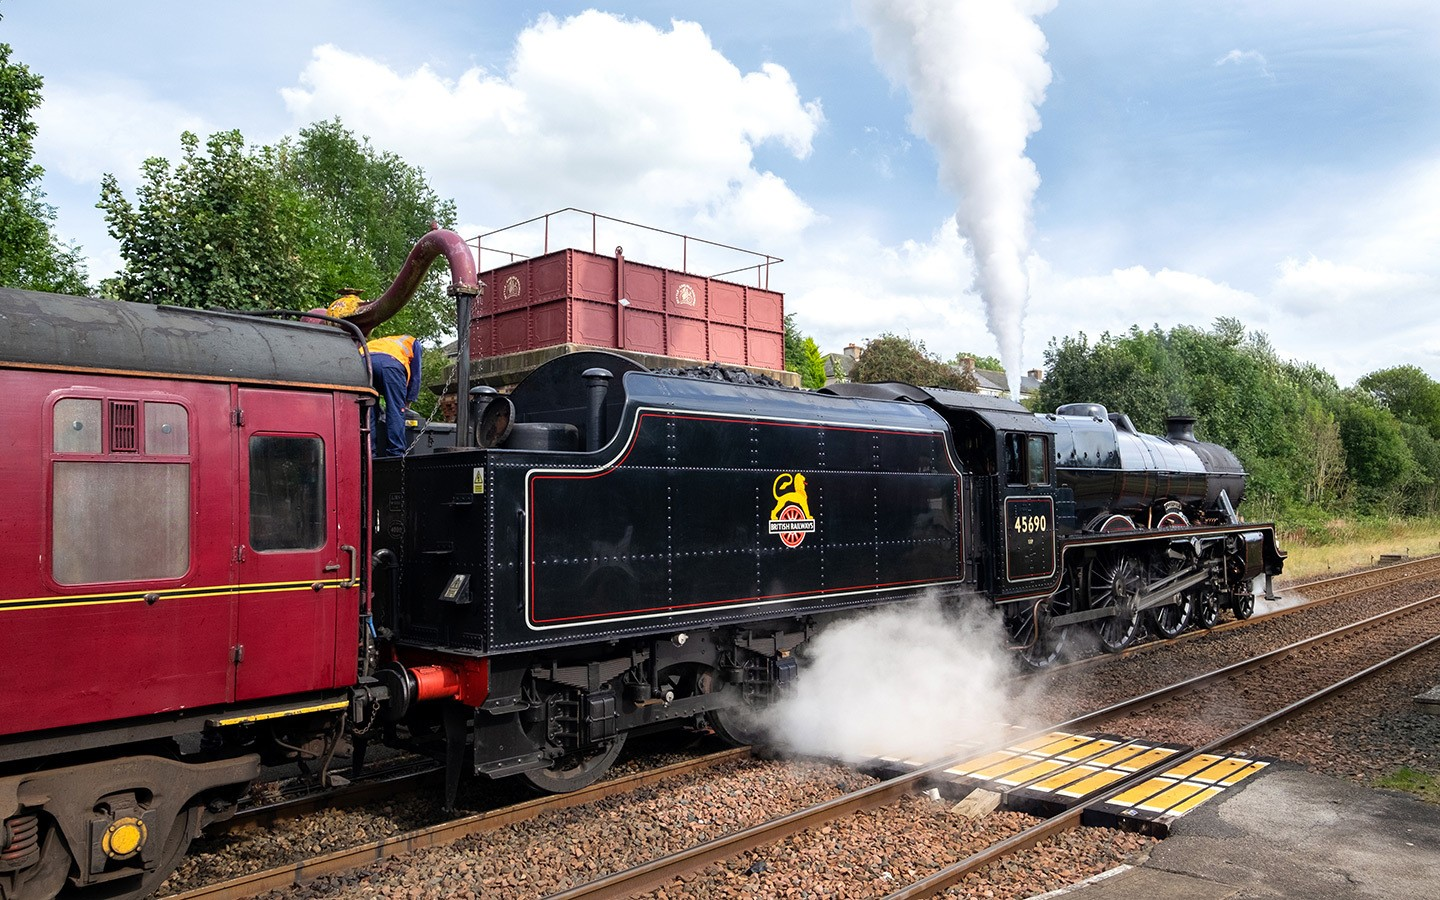 Steam train taking on water at Appleby station on the Settle to Carlisle Railway